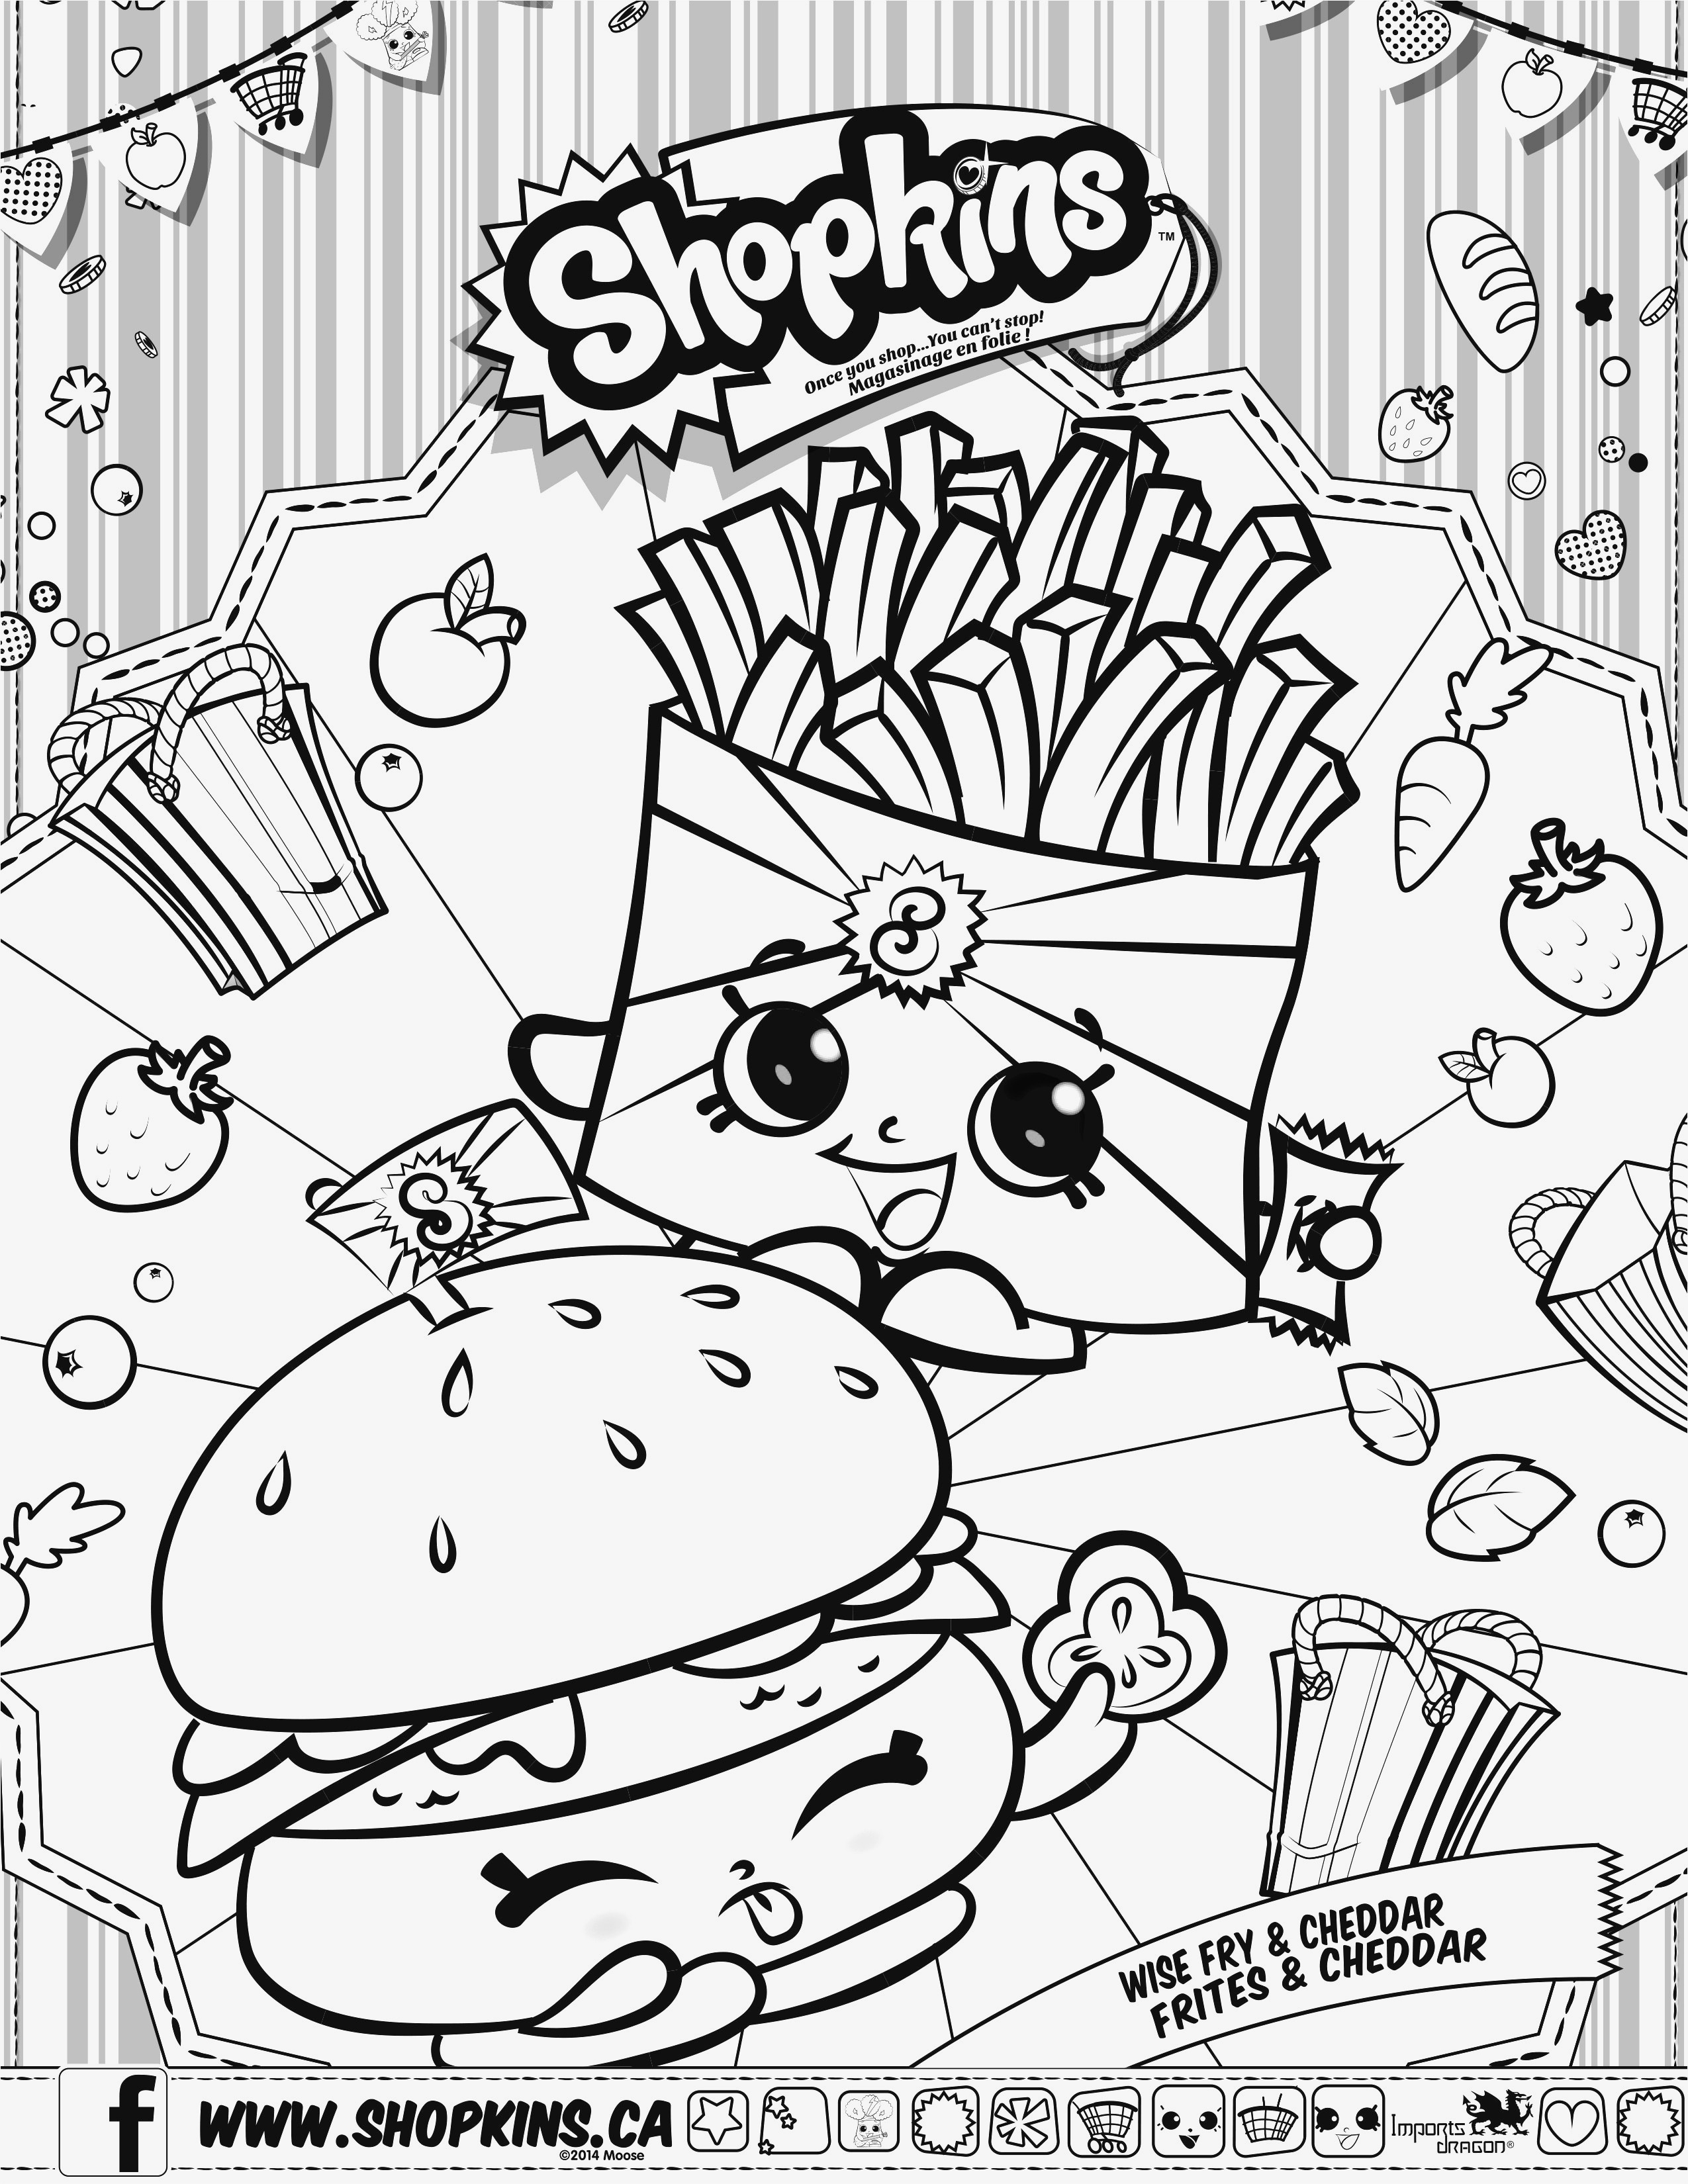 Dork Diaries Printable Coloring Pages  Gallery 16f - To print for your project